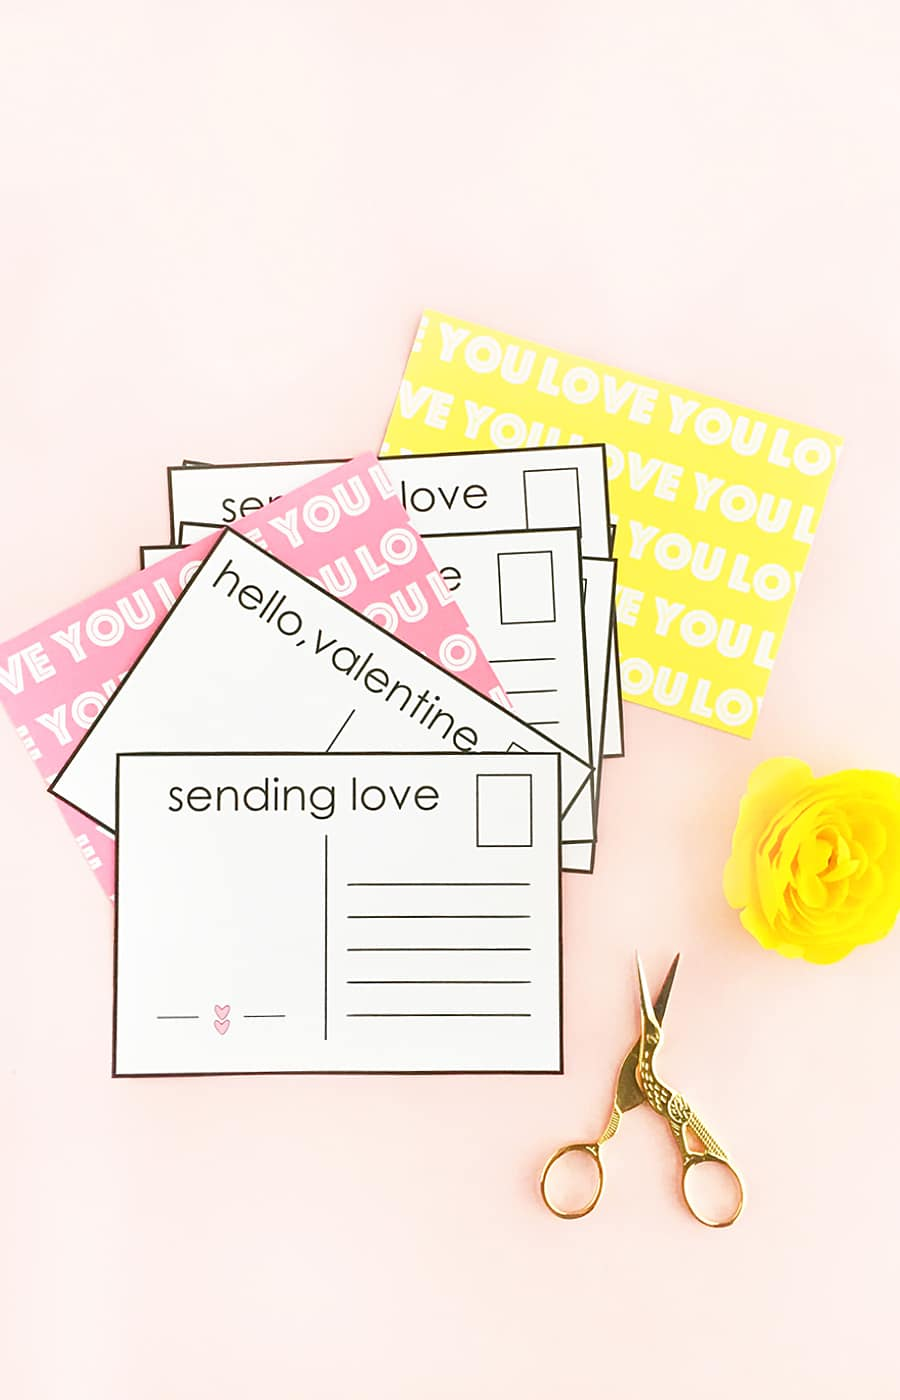 DIY Valentine's Postcards - Design, make and send your own postcards to loved ones this Valentine's